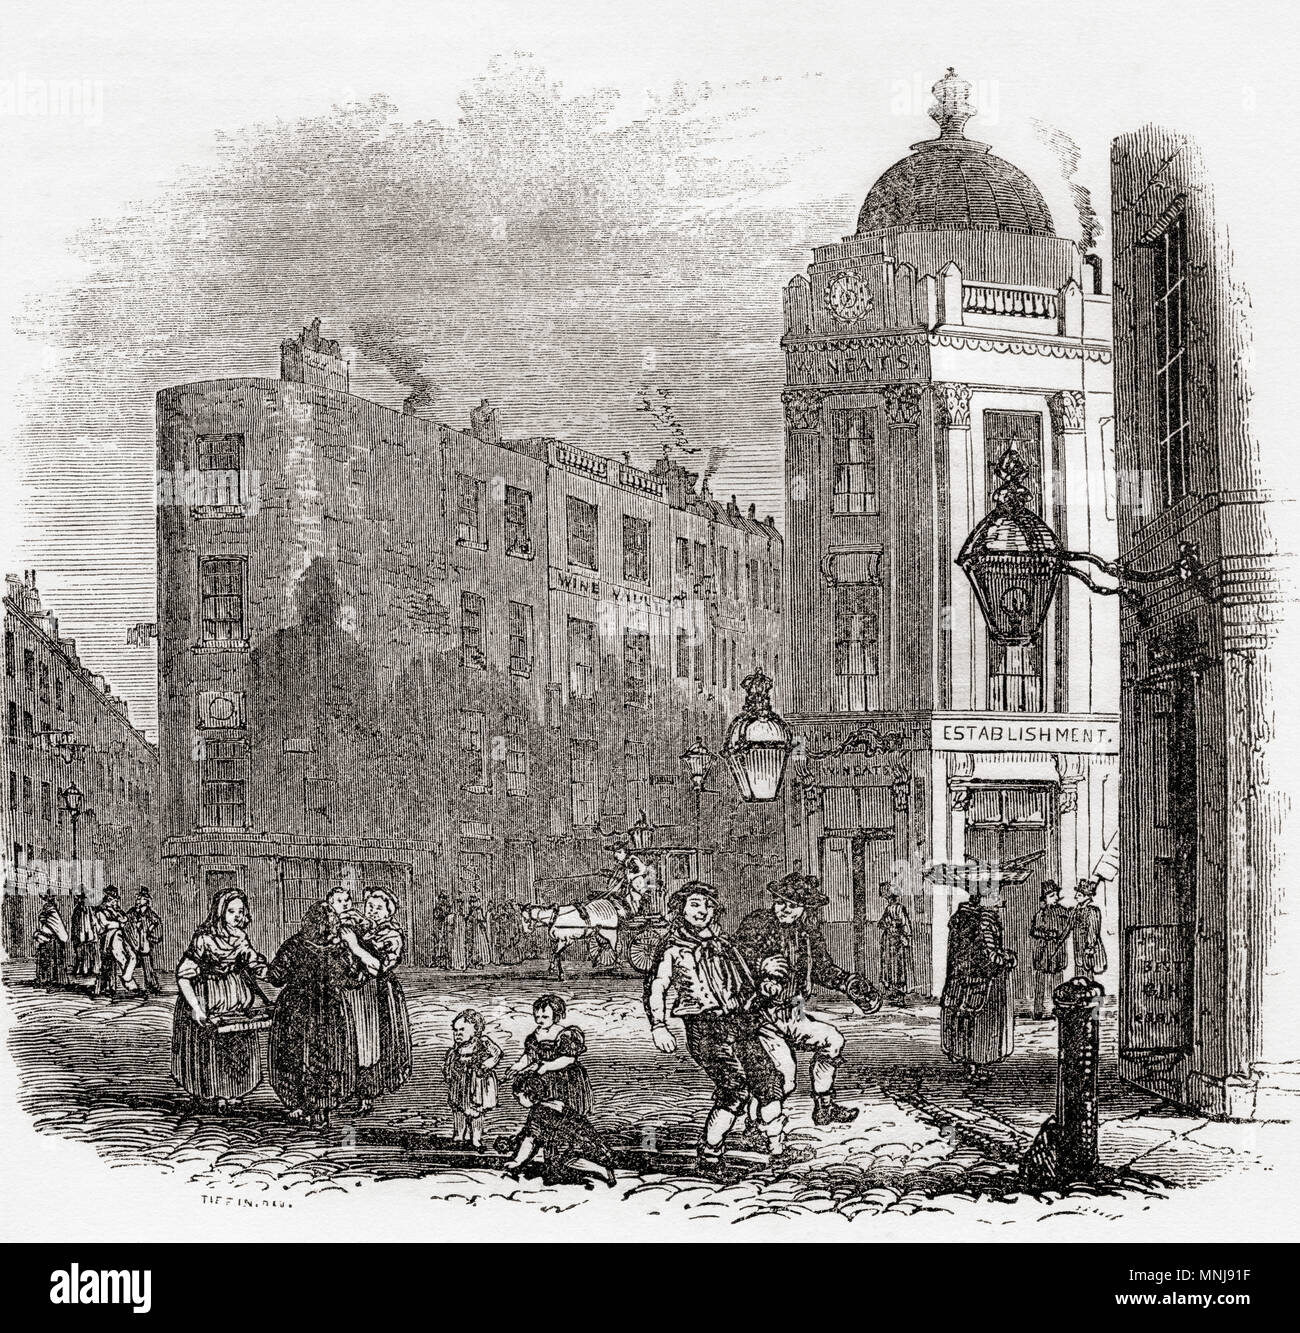 Seven Dials, West End of London, England, seen here in the early 19th century. From Old England: A Pictorial Museum, published 1847. - Stock Image